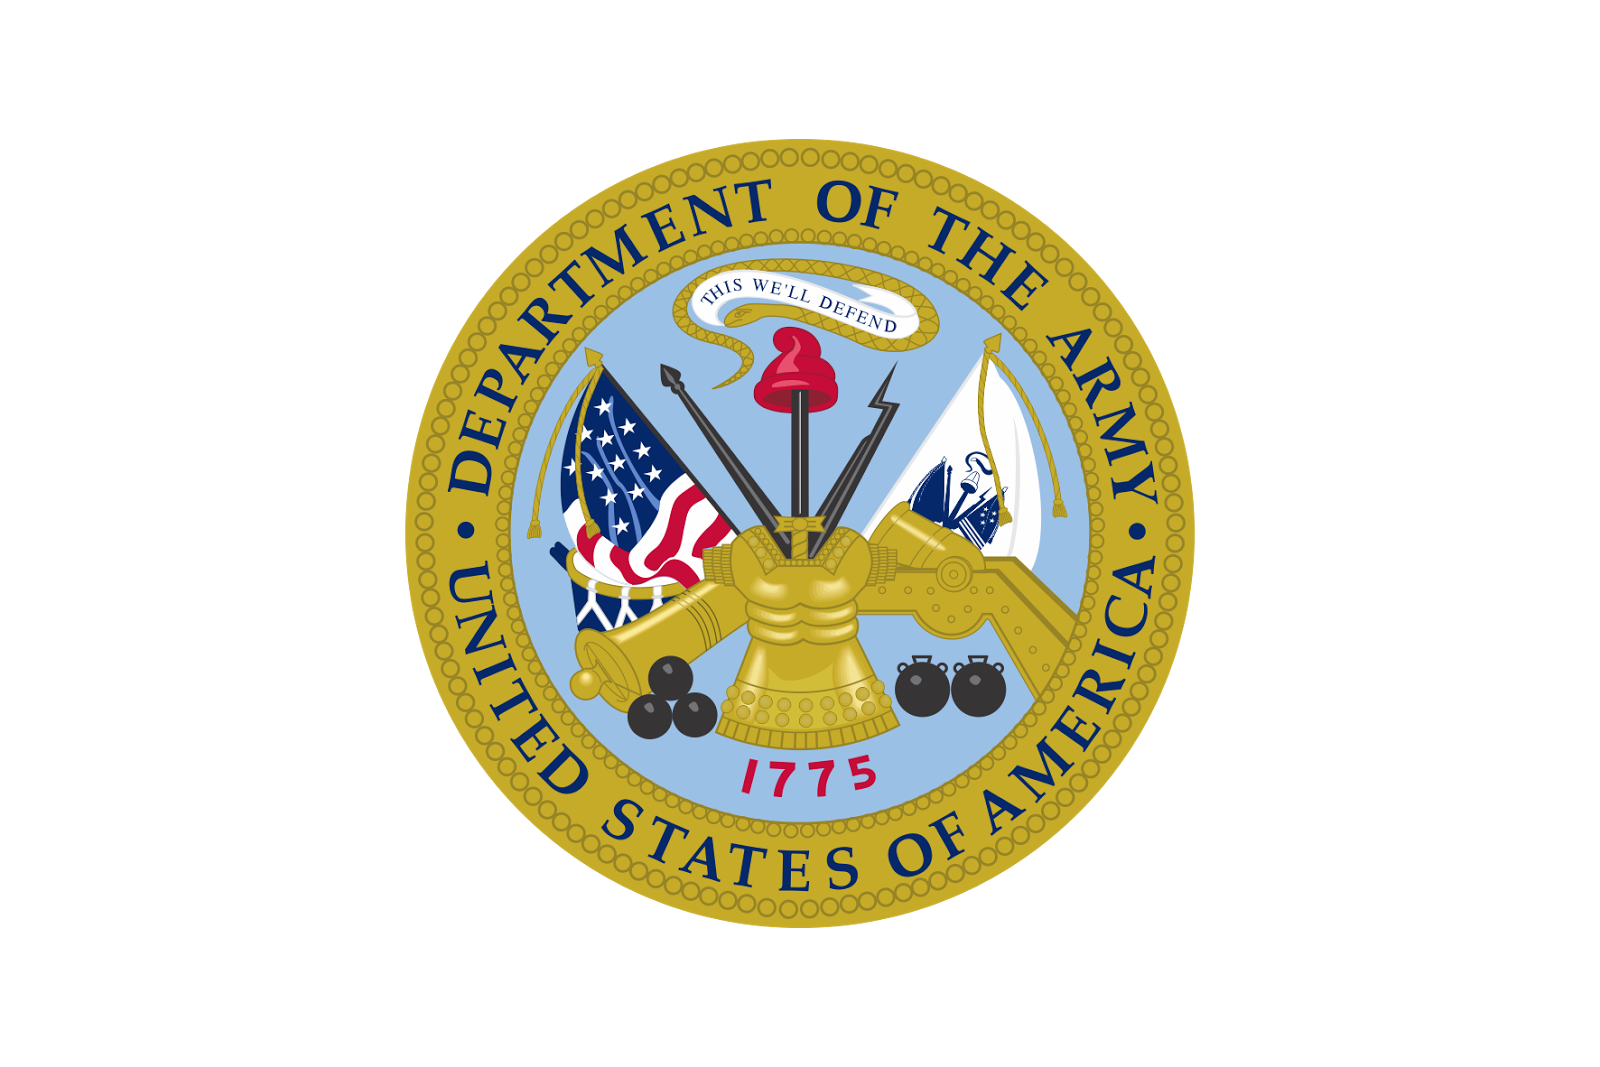 department of the army png logo images #2855